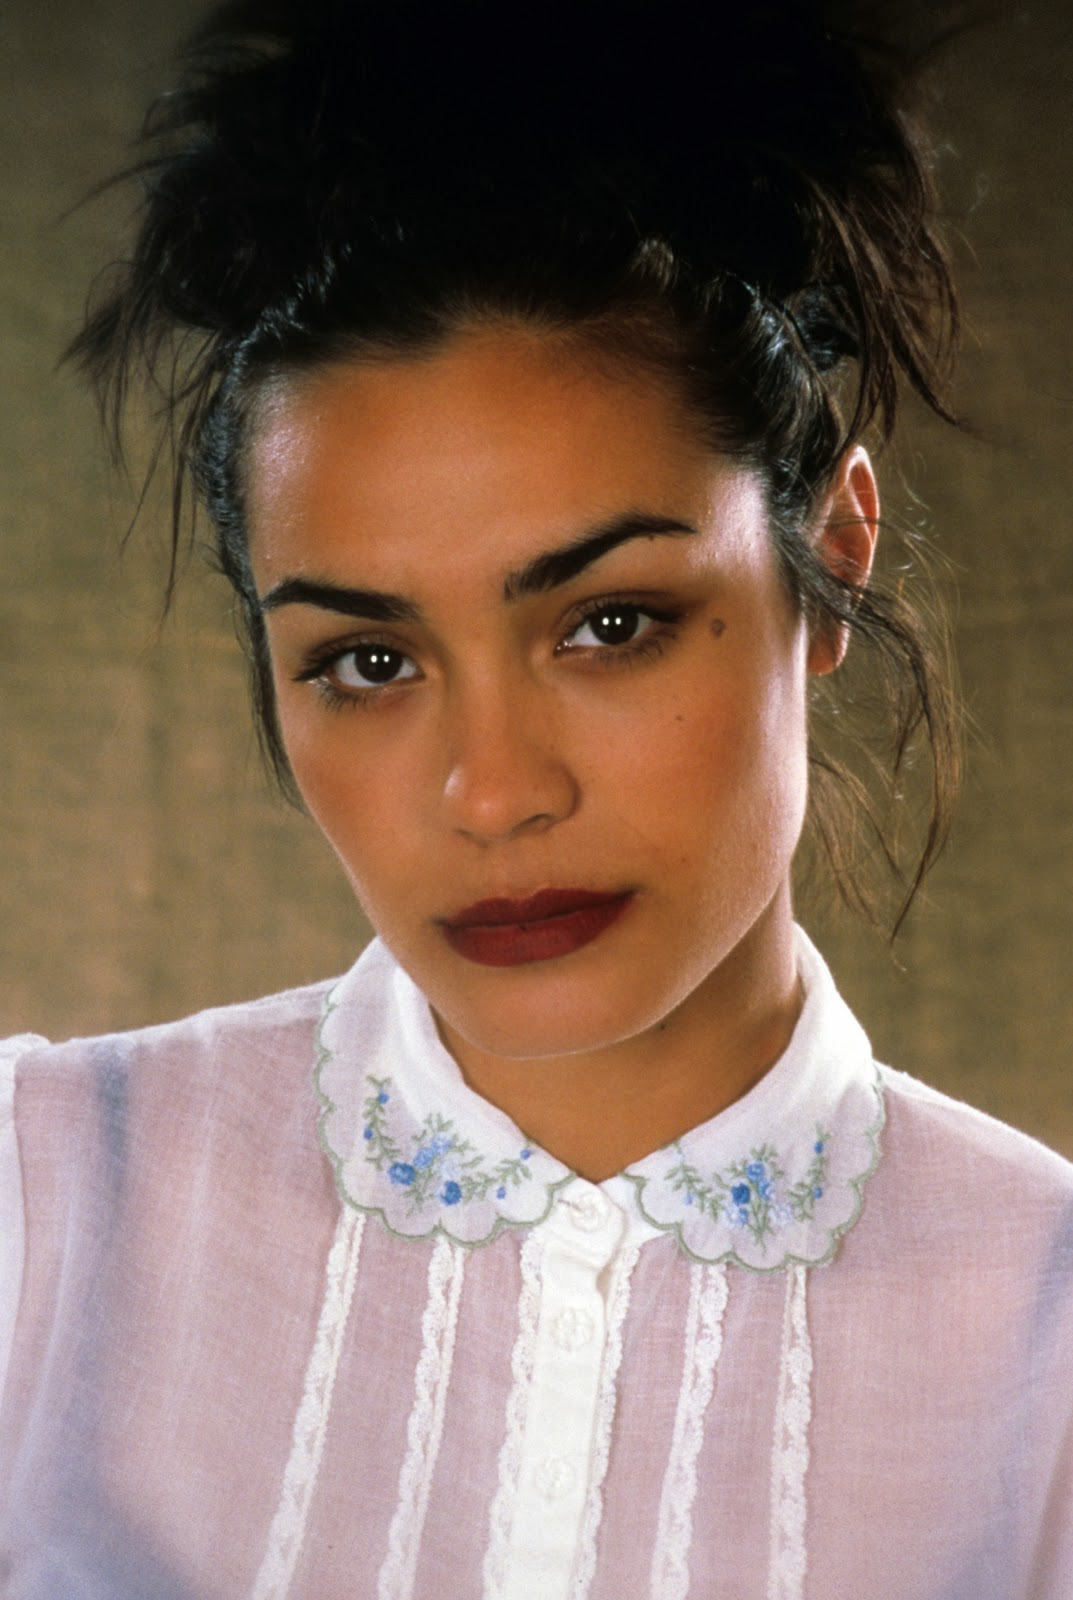 Shannyn Sossamon nudes (32 photos), Topless, Paparazzi, Twitter, see through 2006